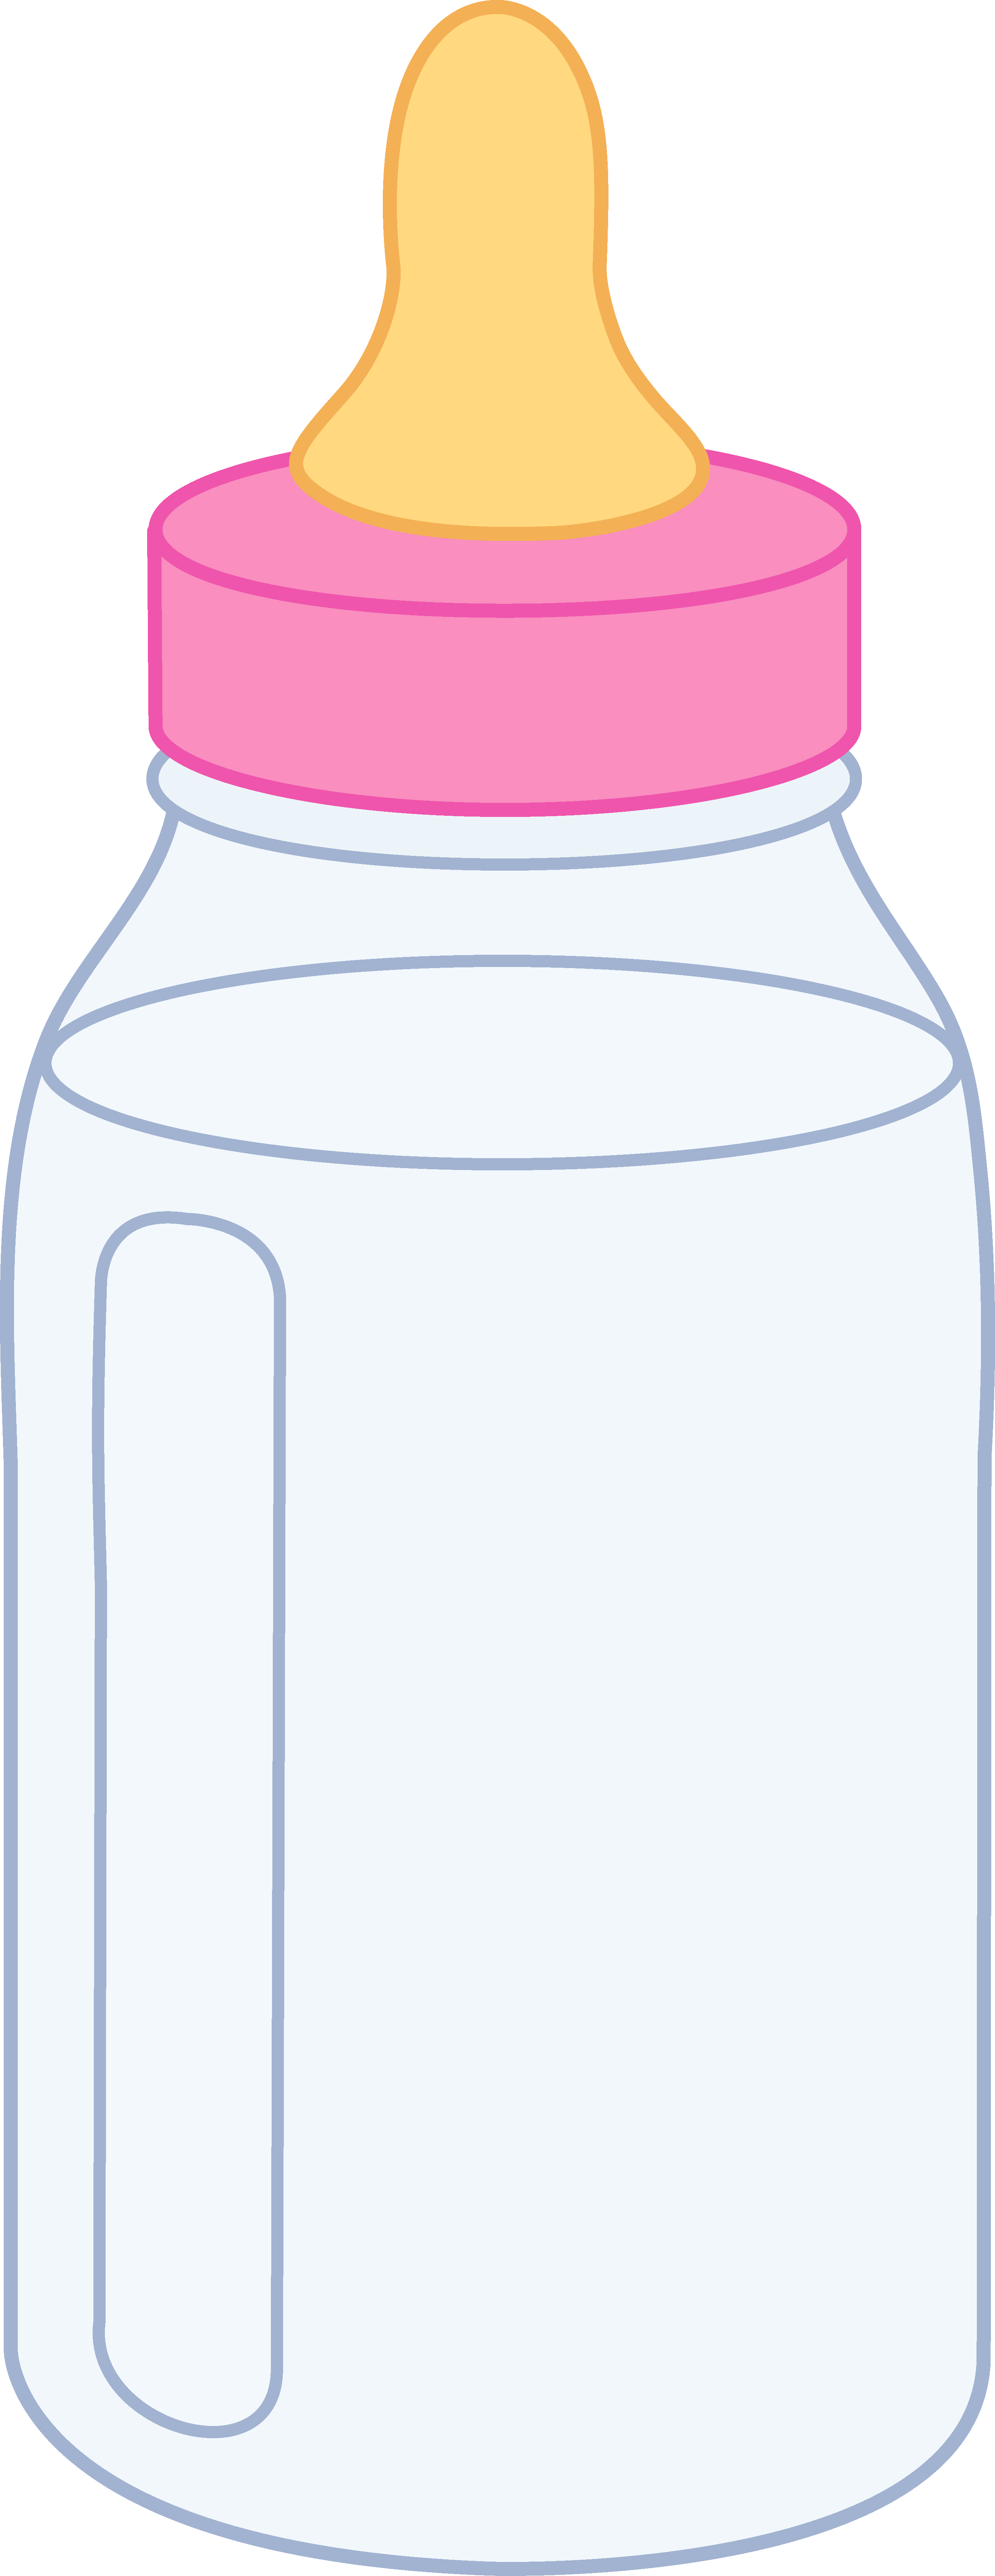 Drawing bottles baby bottle. How to draw a